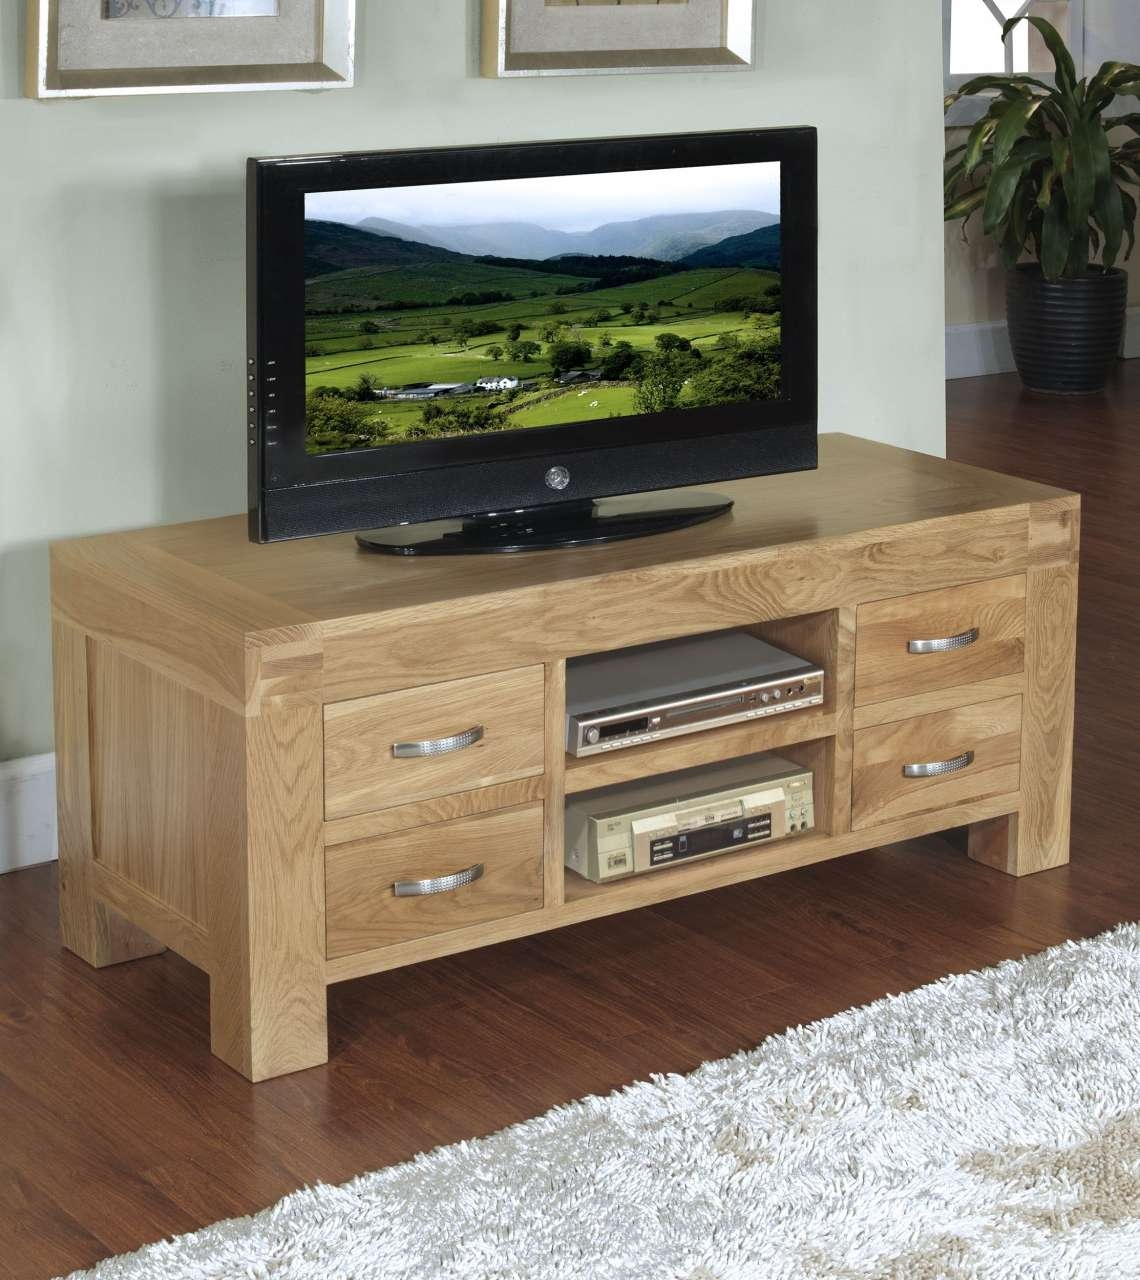 Oak Tv Cabinet – Cabinet Design Ideas With Oak Tv Cabinets With Doors (View 9 of 20)